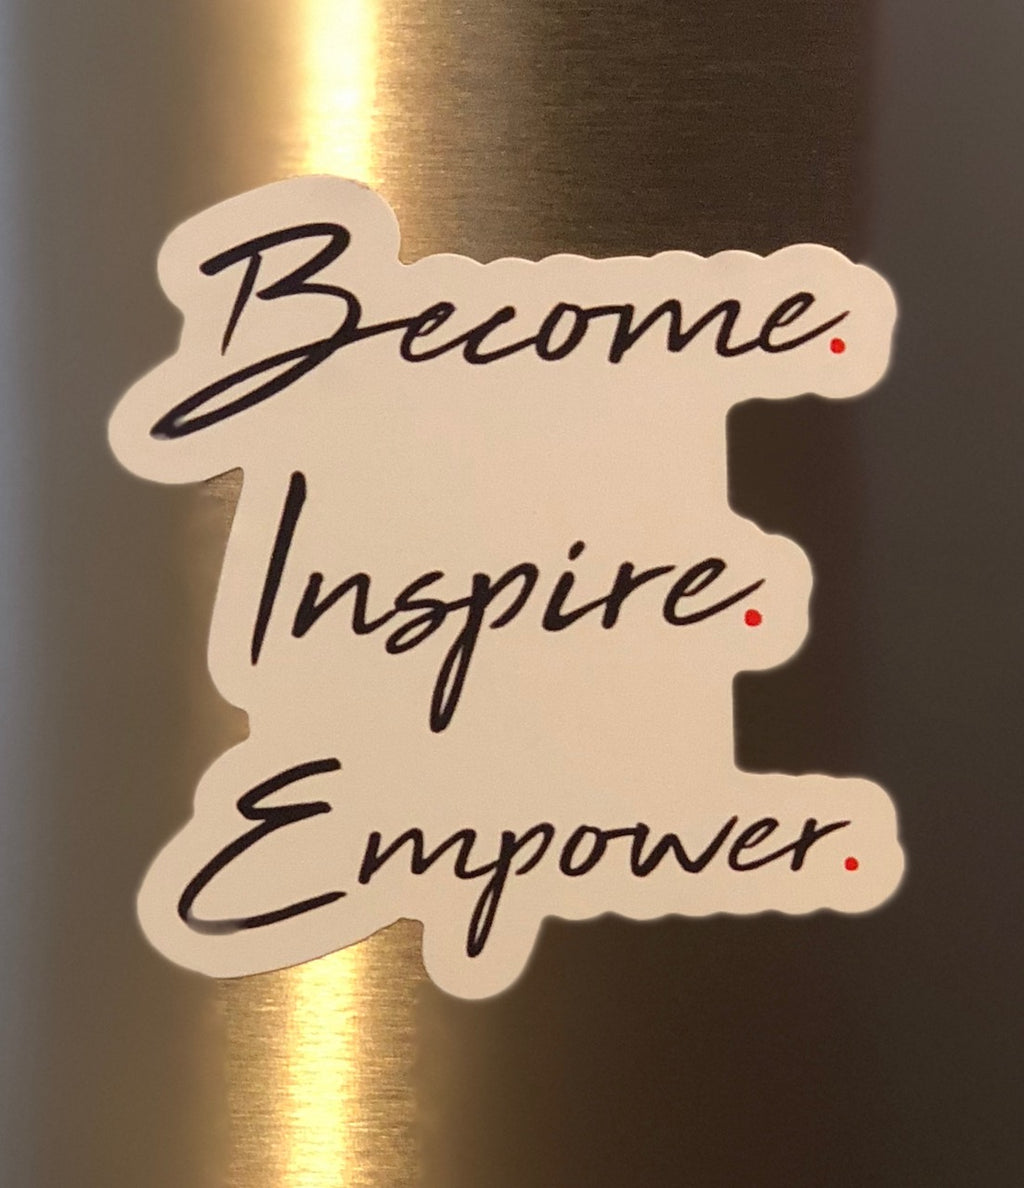 Become. Inspire. Empower. - Magnet